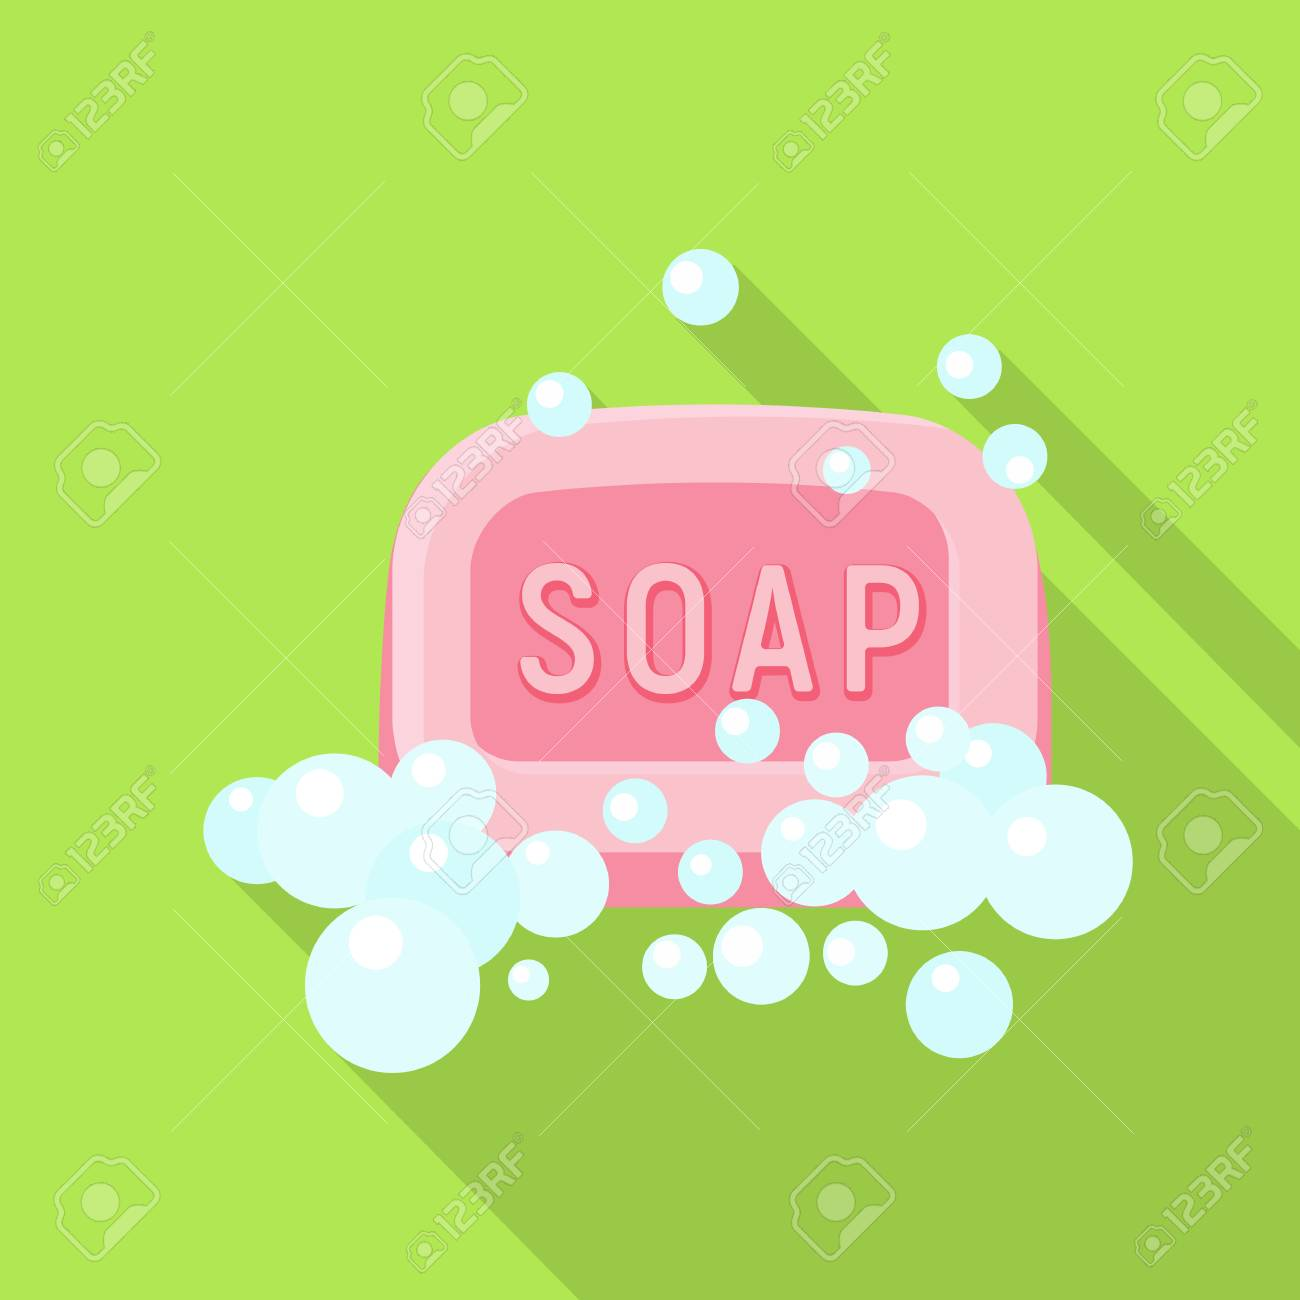 wash soap icon flat illustration of wash soap vector icon for royalty free cliparts vectors and stock illustration image 115556102 wash soap icon flat illustration of wash soap vector icon for